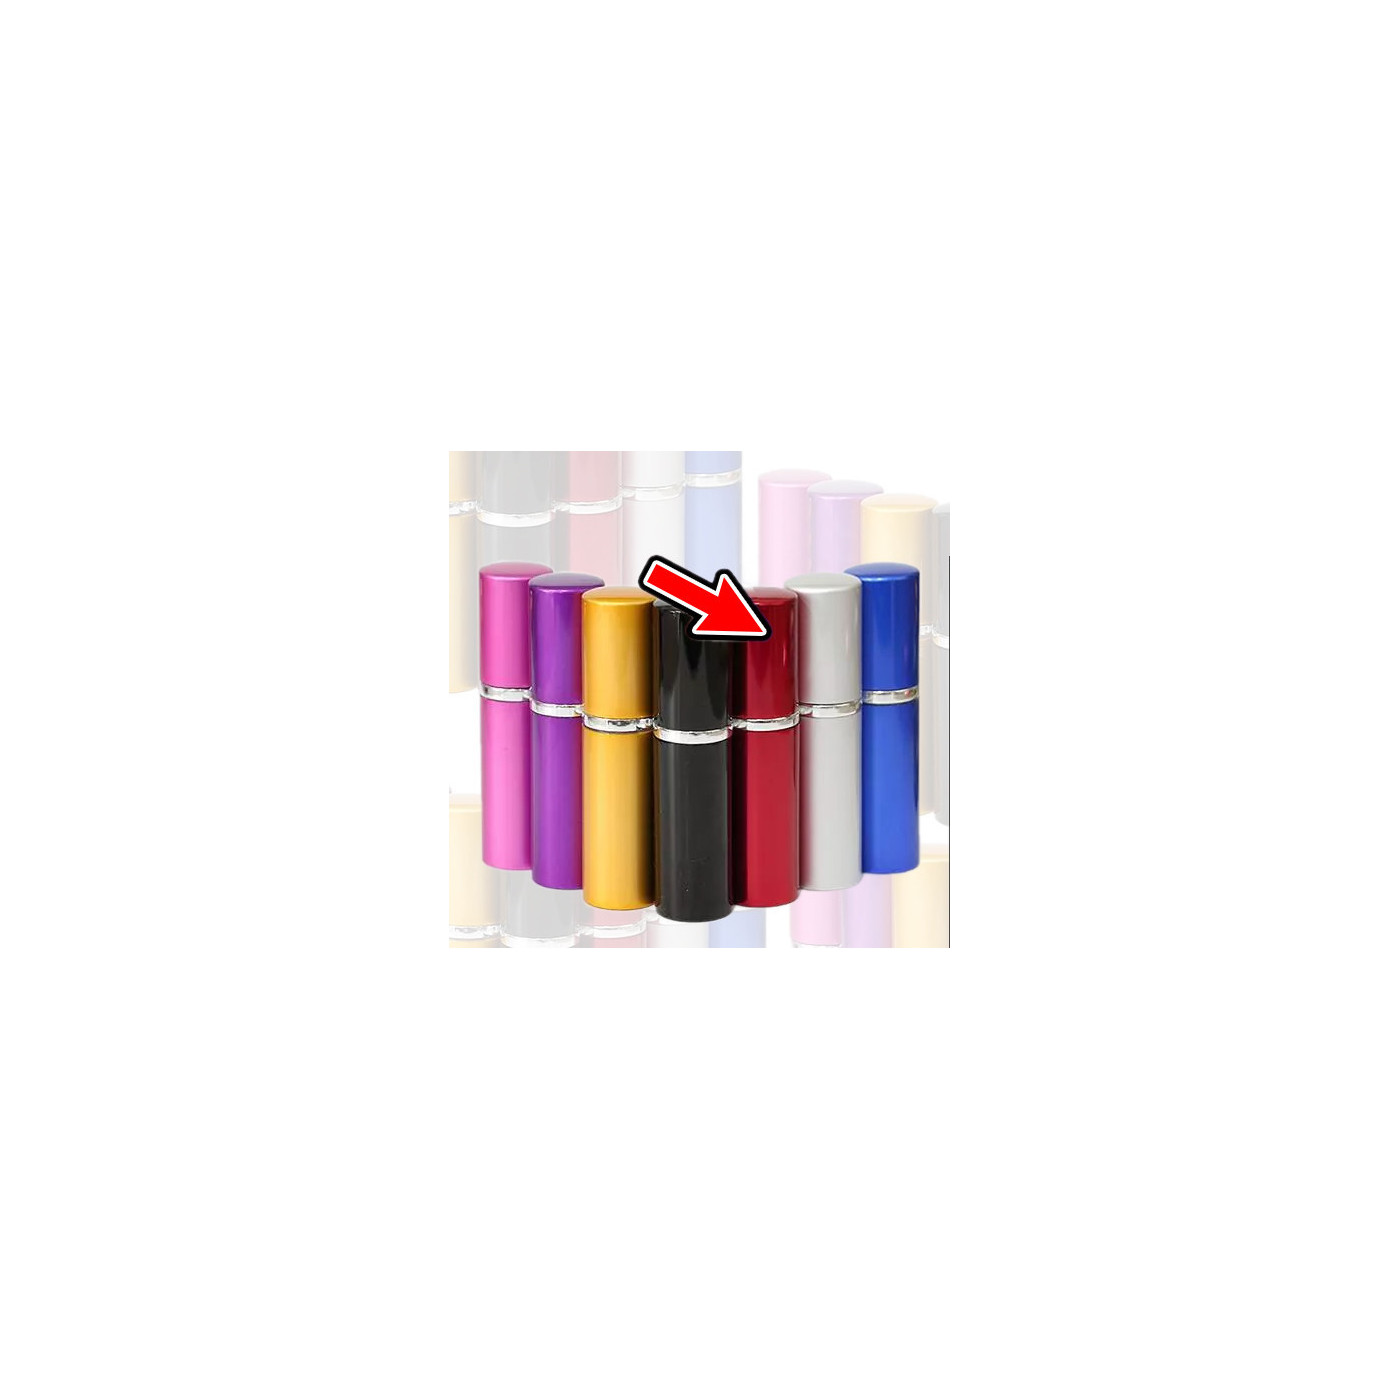 Set of 5 Atomizers (10 ml, red)